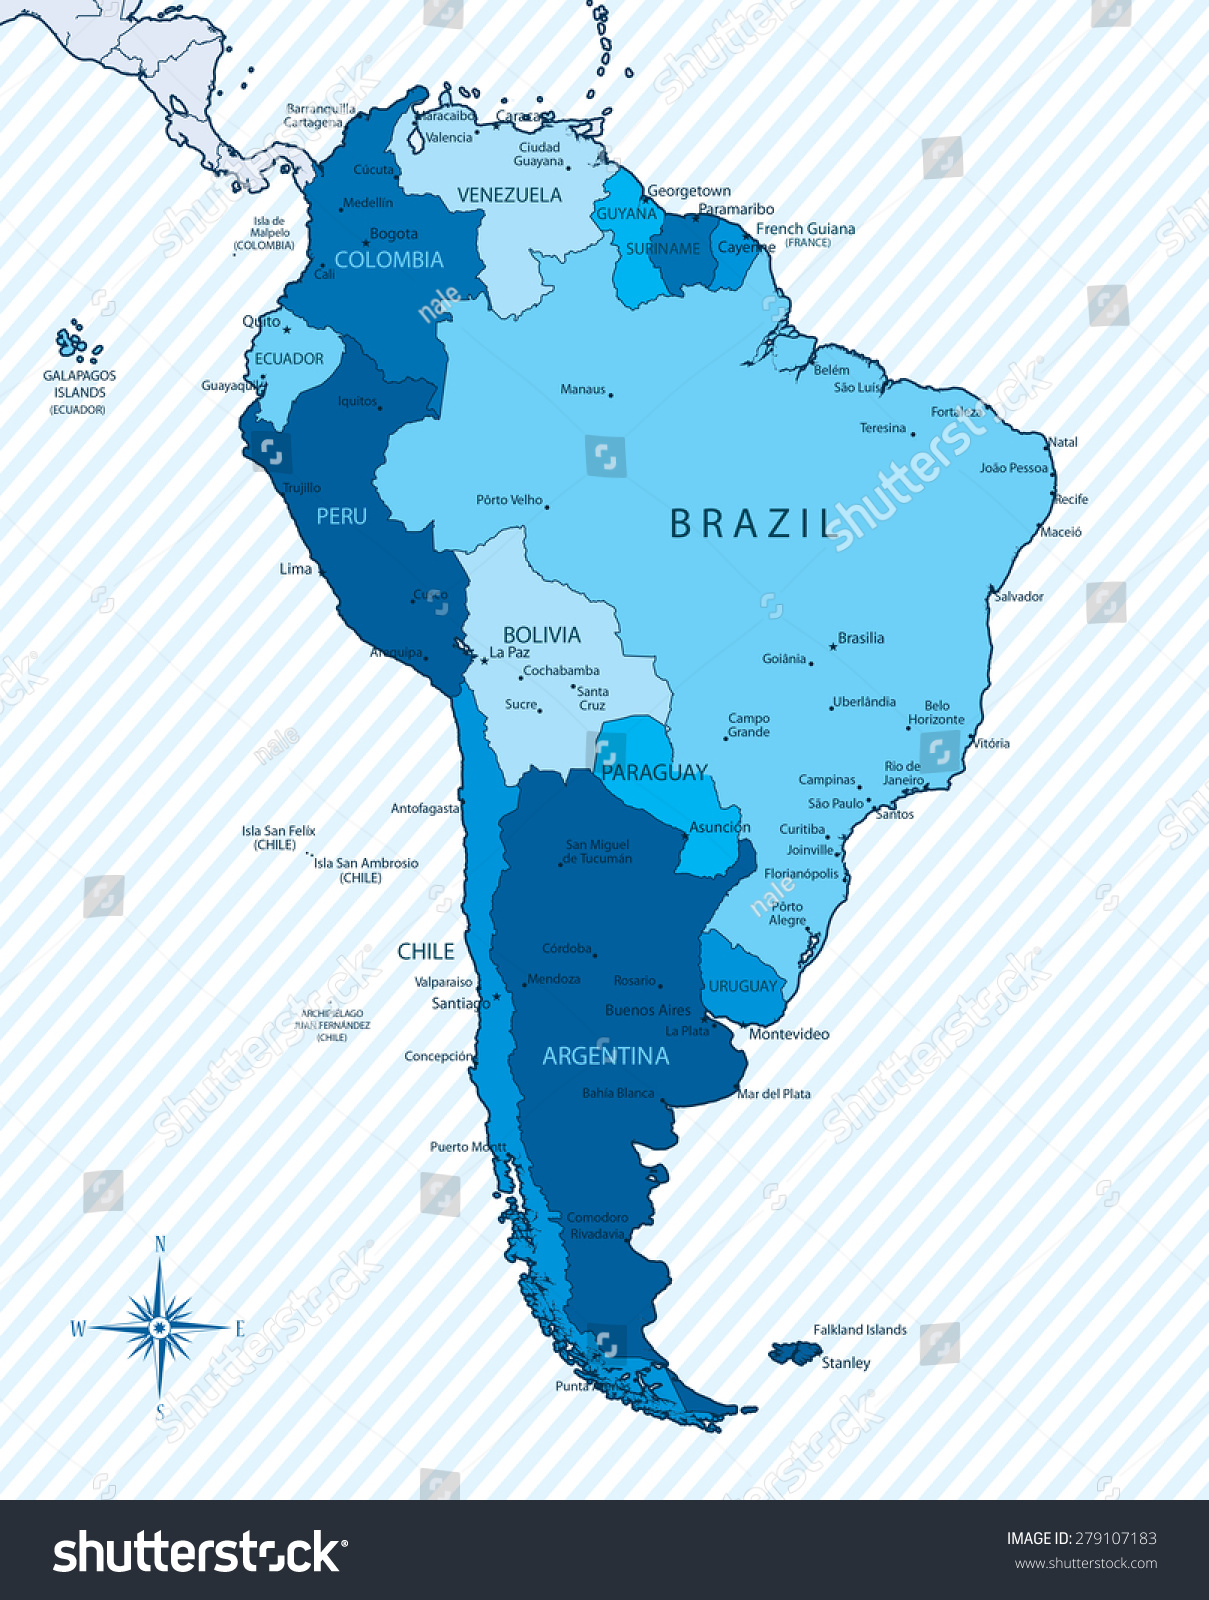 Vector Ilration Of South America Map With Countries In Blue Color Each Country Has Its